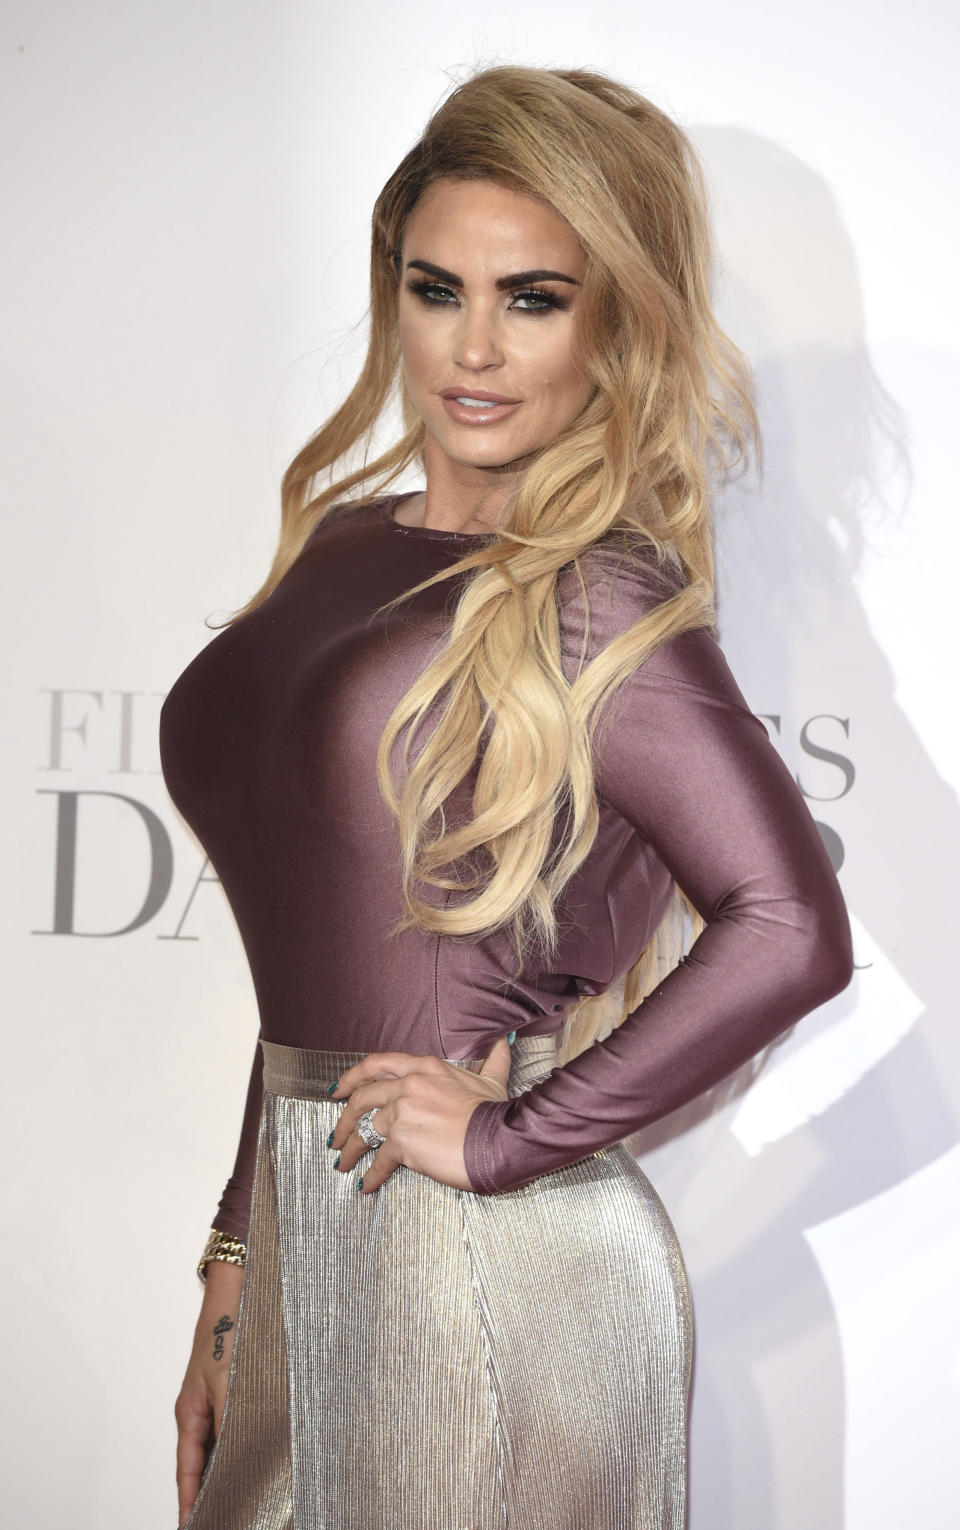 APRIL 21st 2021: Fashion model and media personality Katie Price announces her engagement to be married to boyfriend Carl Woods. - File Photo by: zz/KGC-03/STAR MAX/IPx 2017 2/9/17 Katie Price at the European premiere of